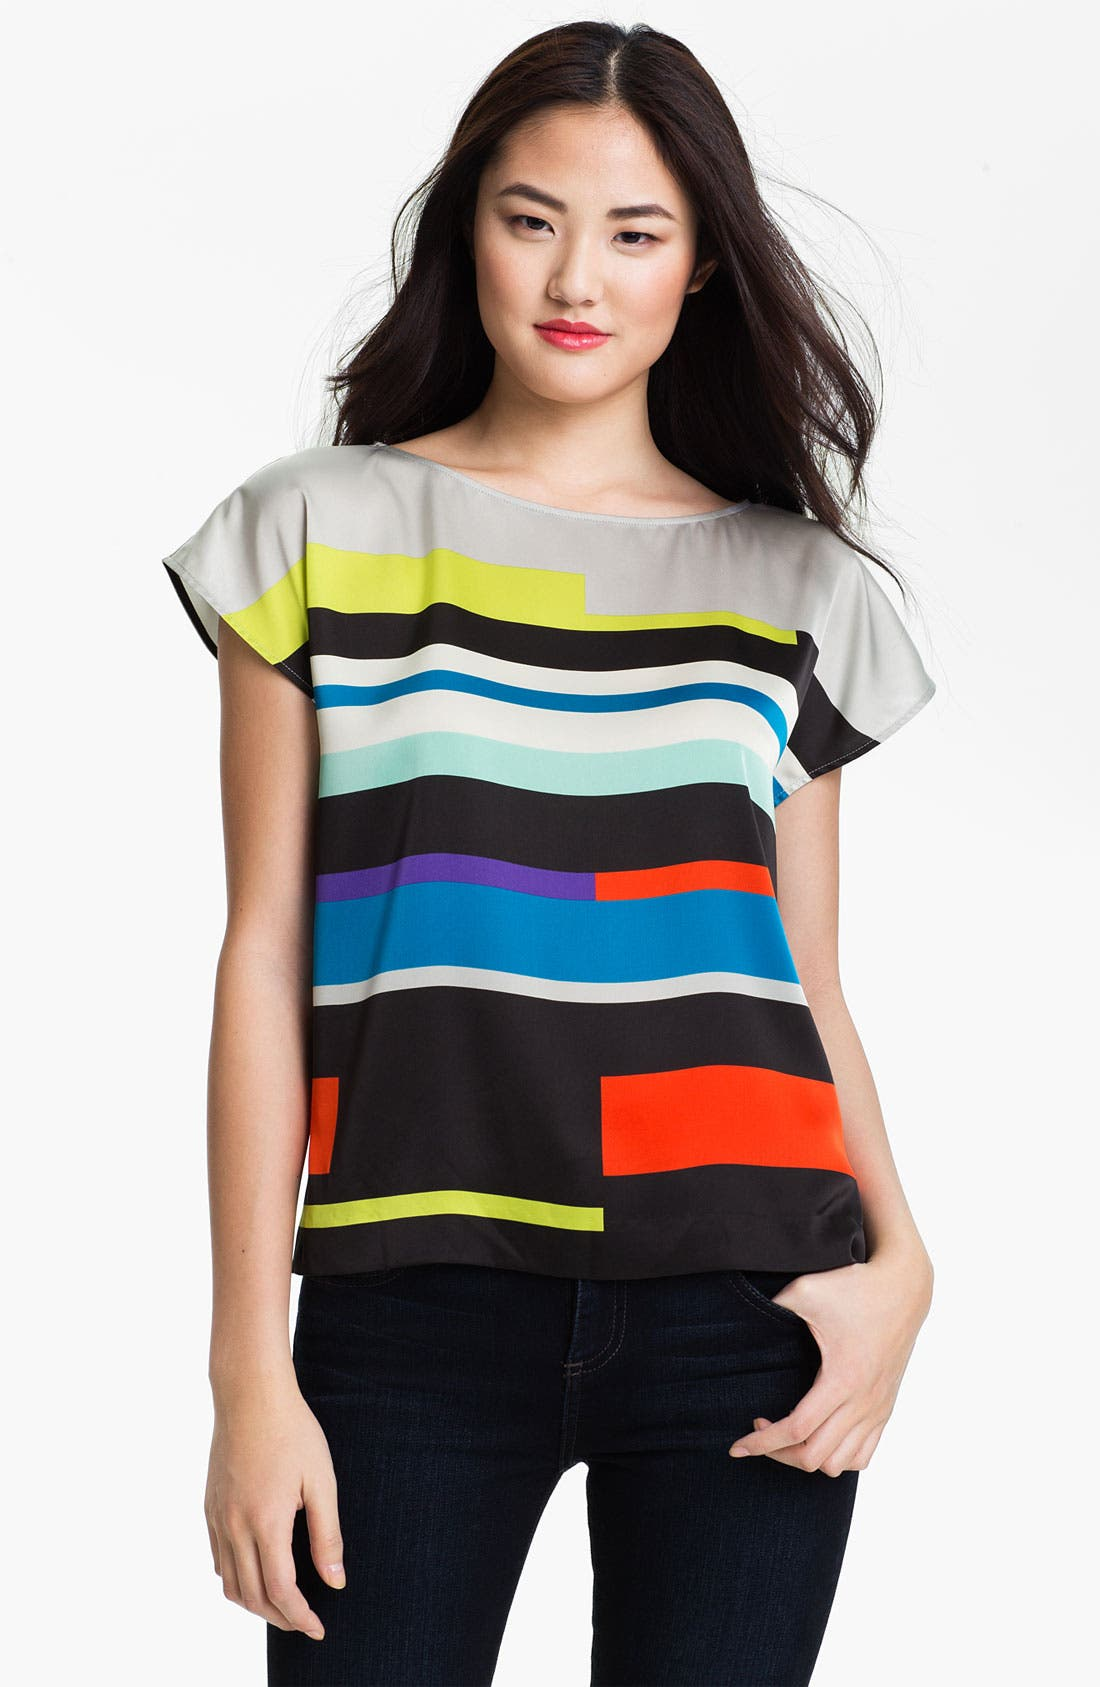 Alternate Image 1 Selected - Vince Camuto 'Graphic Lines' Blouse (Petite)